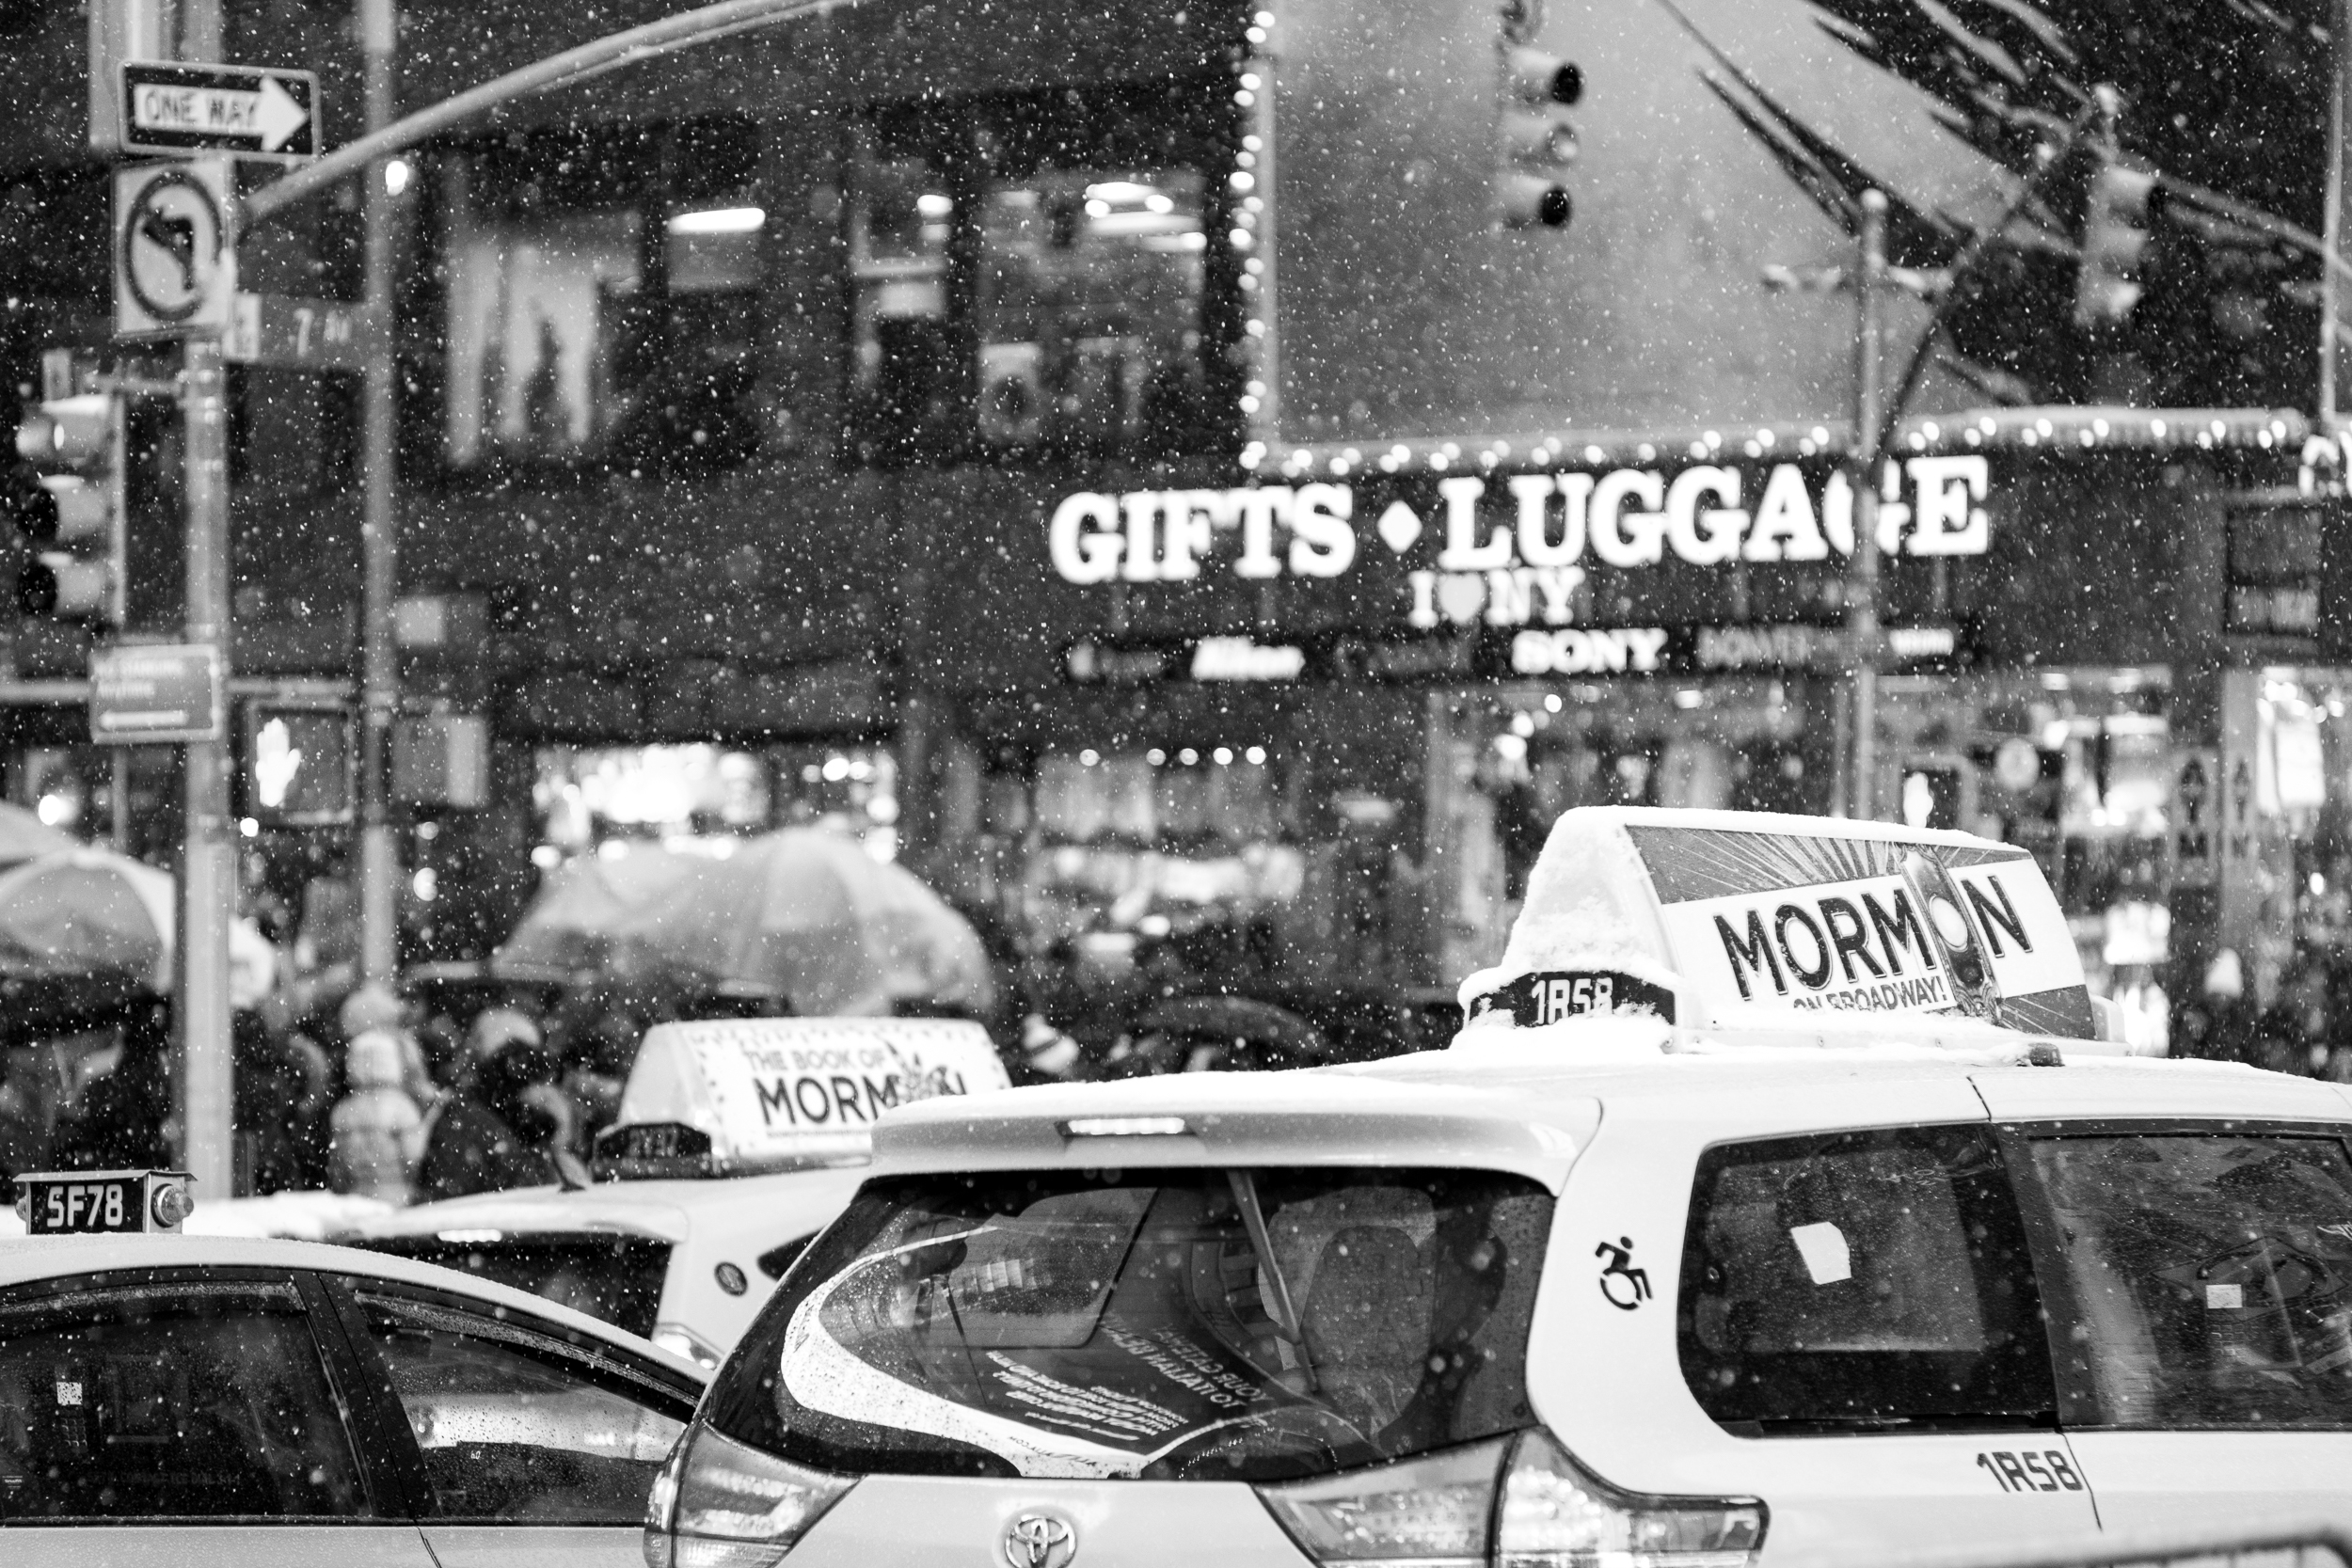 Taxi cabs lined up on the streets of Times Square during a late evening snowfall